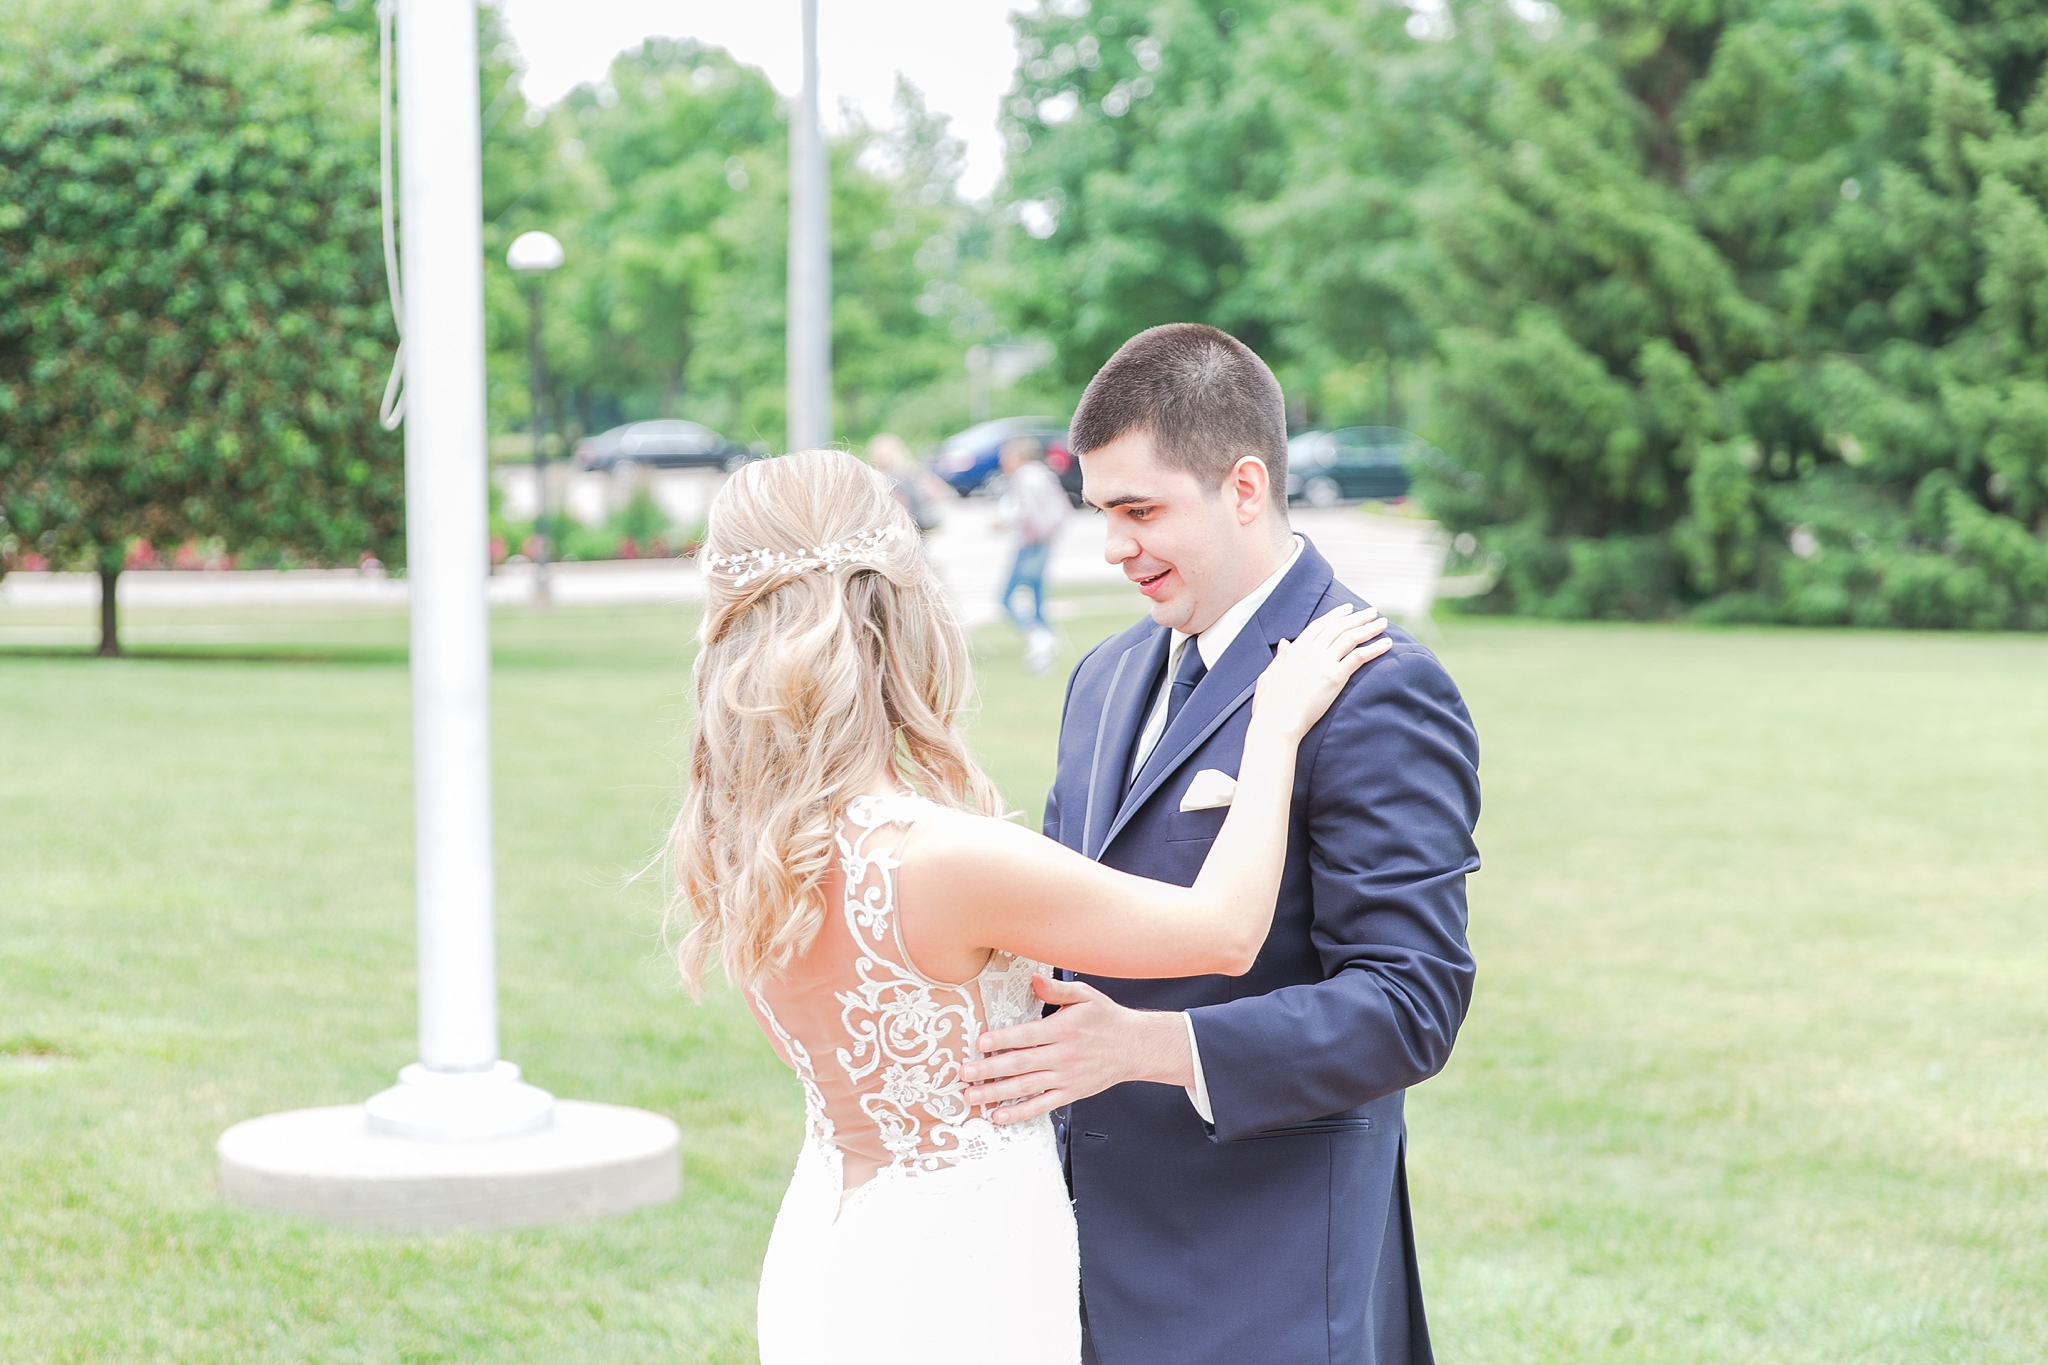 candid-romantic-wedding-photos-at-the-h-hotel-in-midland-michigan-by-courtney-carolyn-photography_0026.jpg